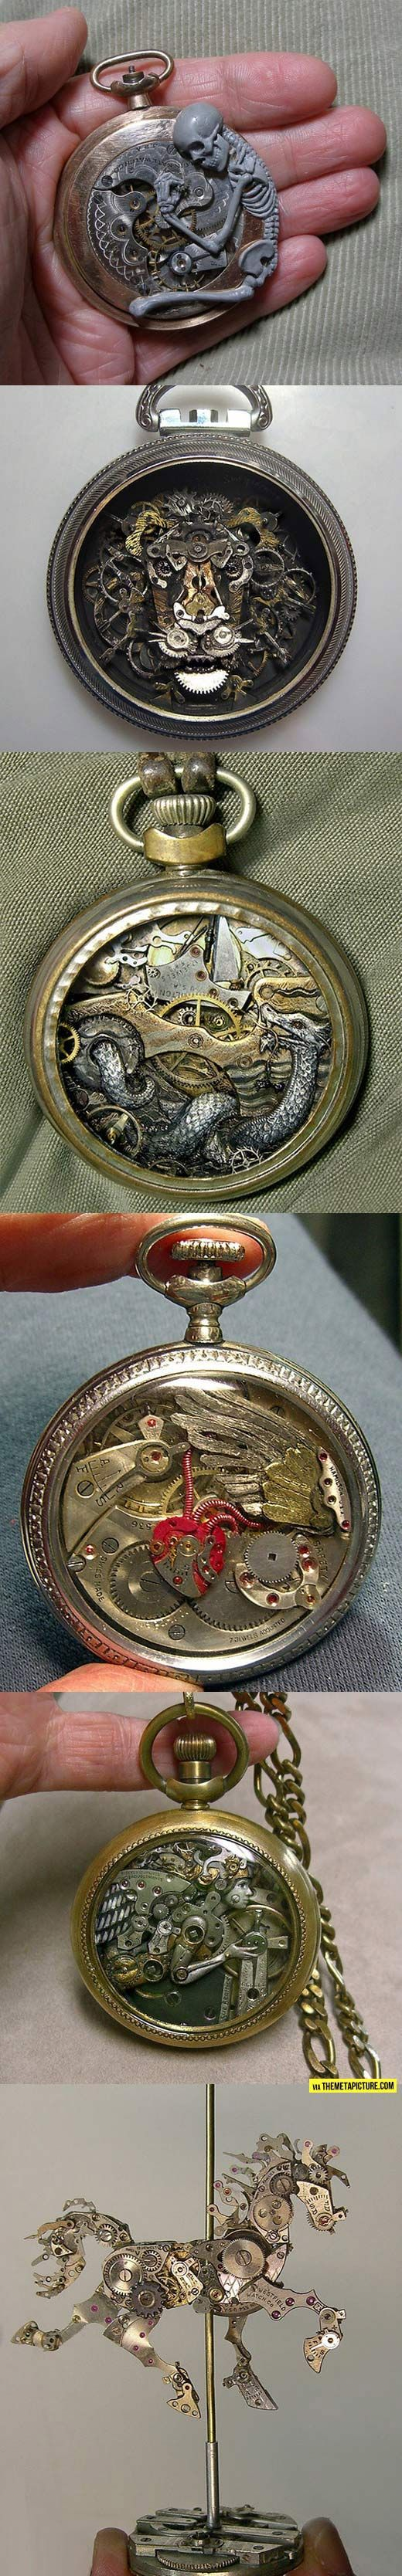 Tattoo inspiration... Sculptures from old watch parts